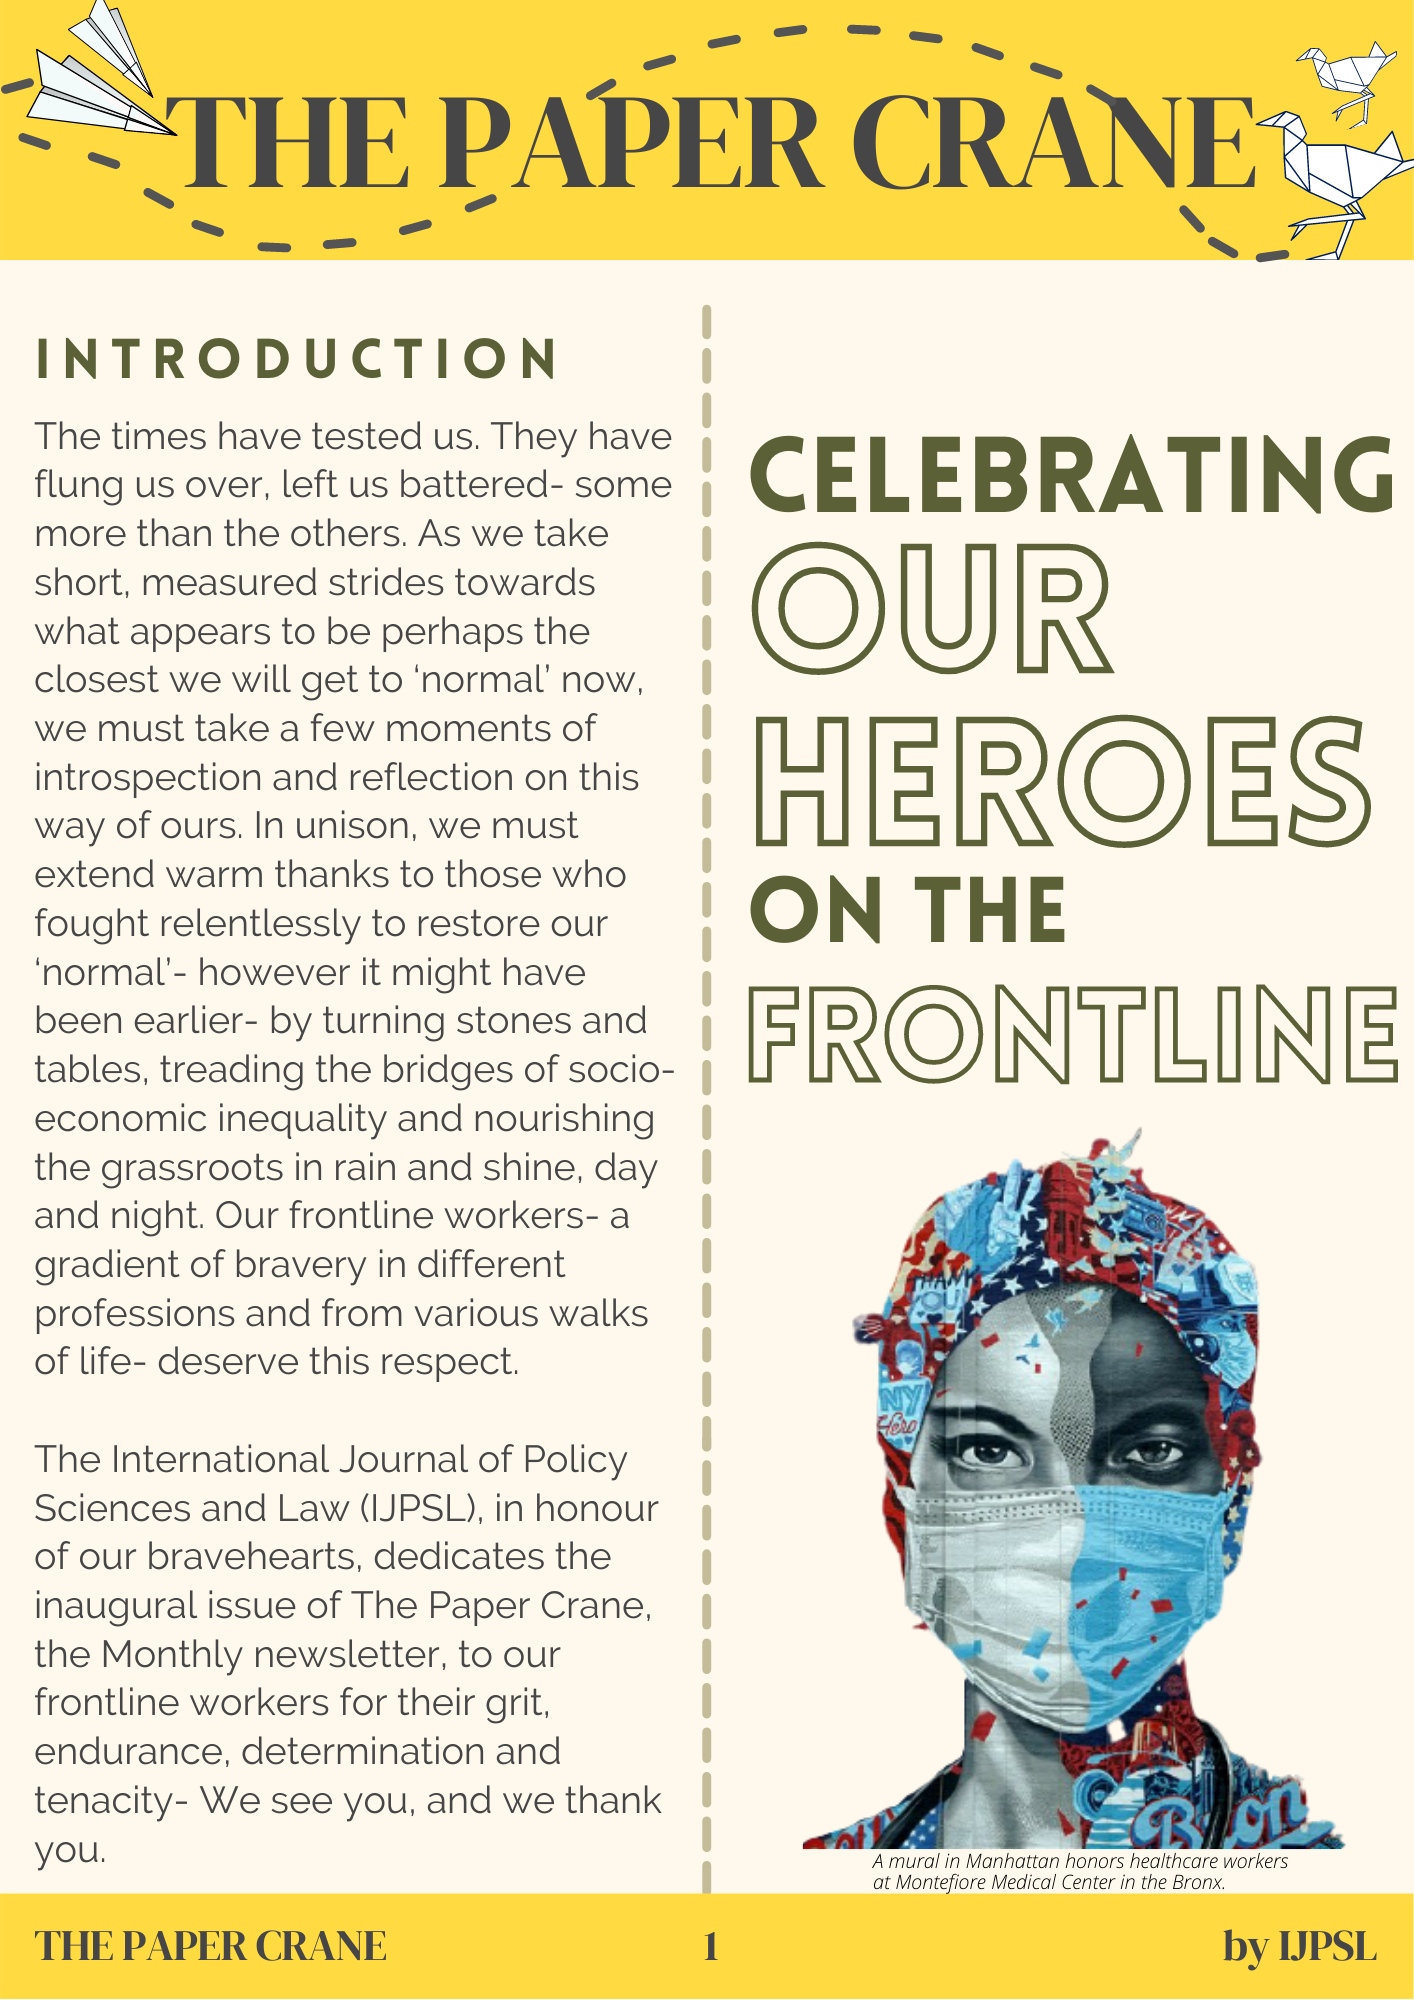 In the first issue of our newsletter, we celebrate our heroes- our Frontline Workers!